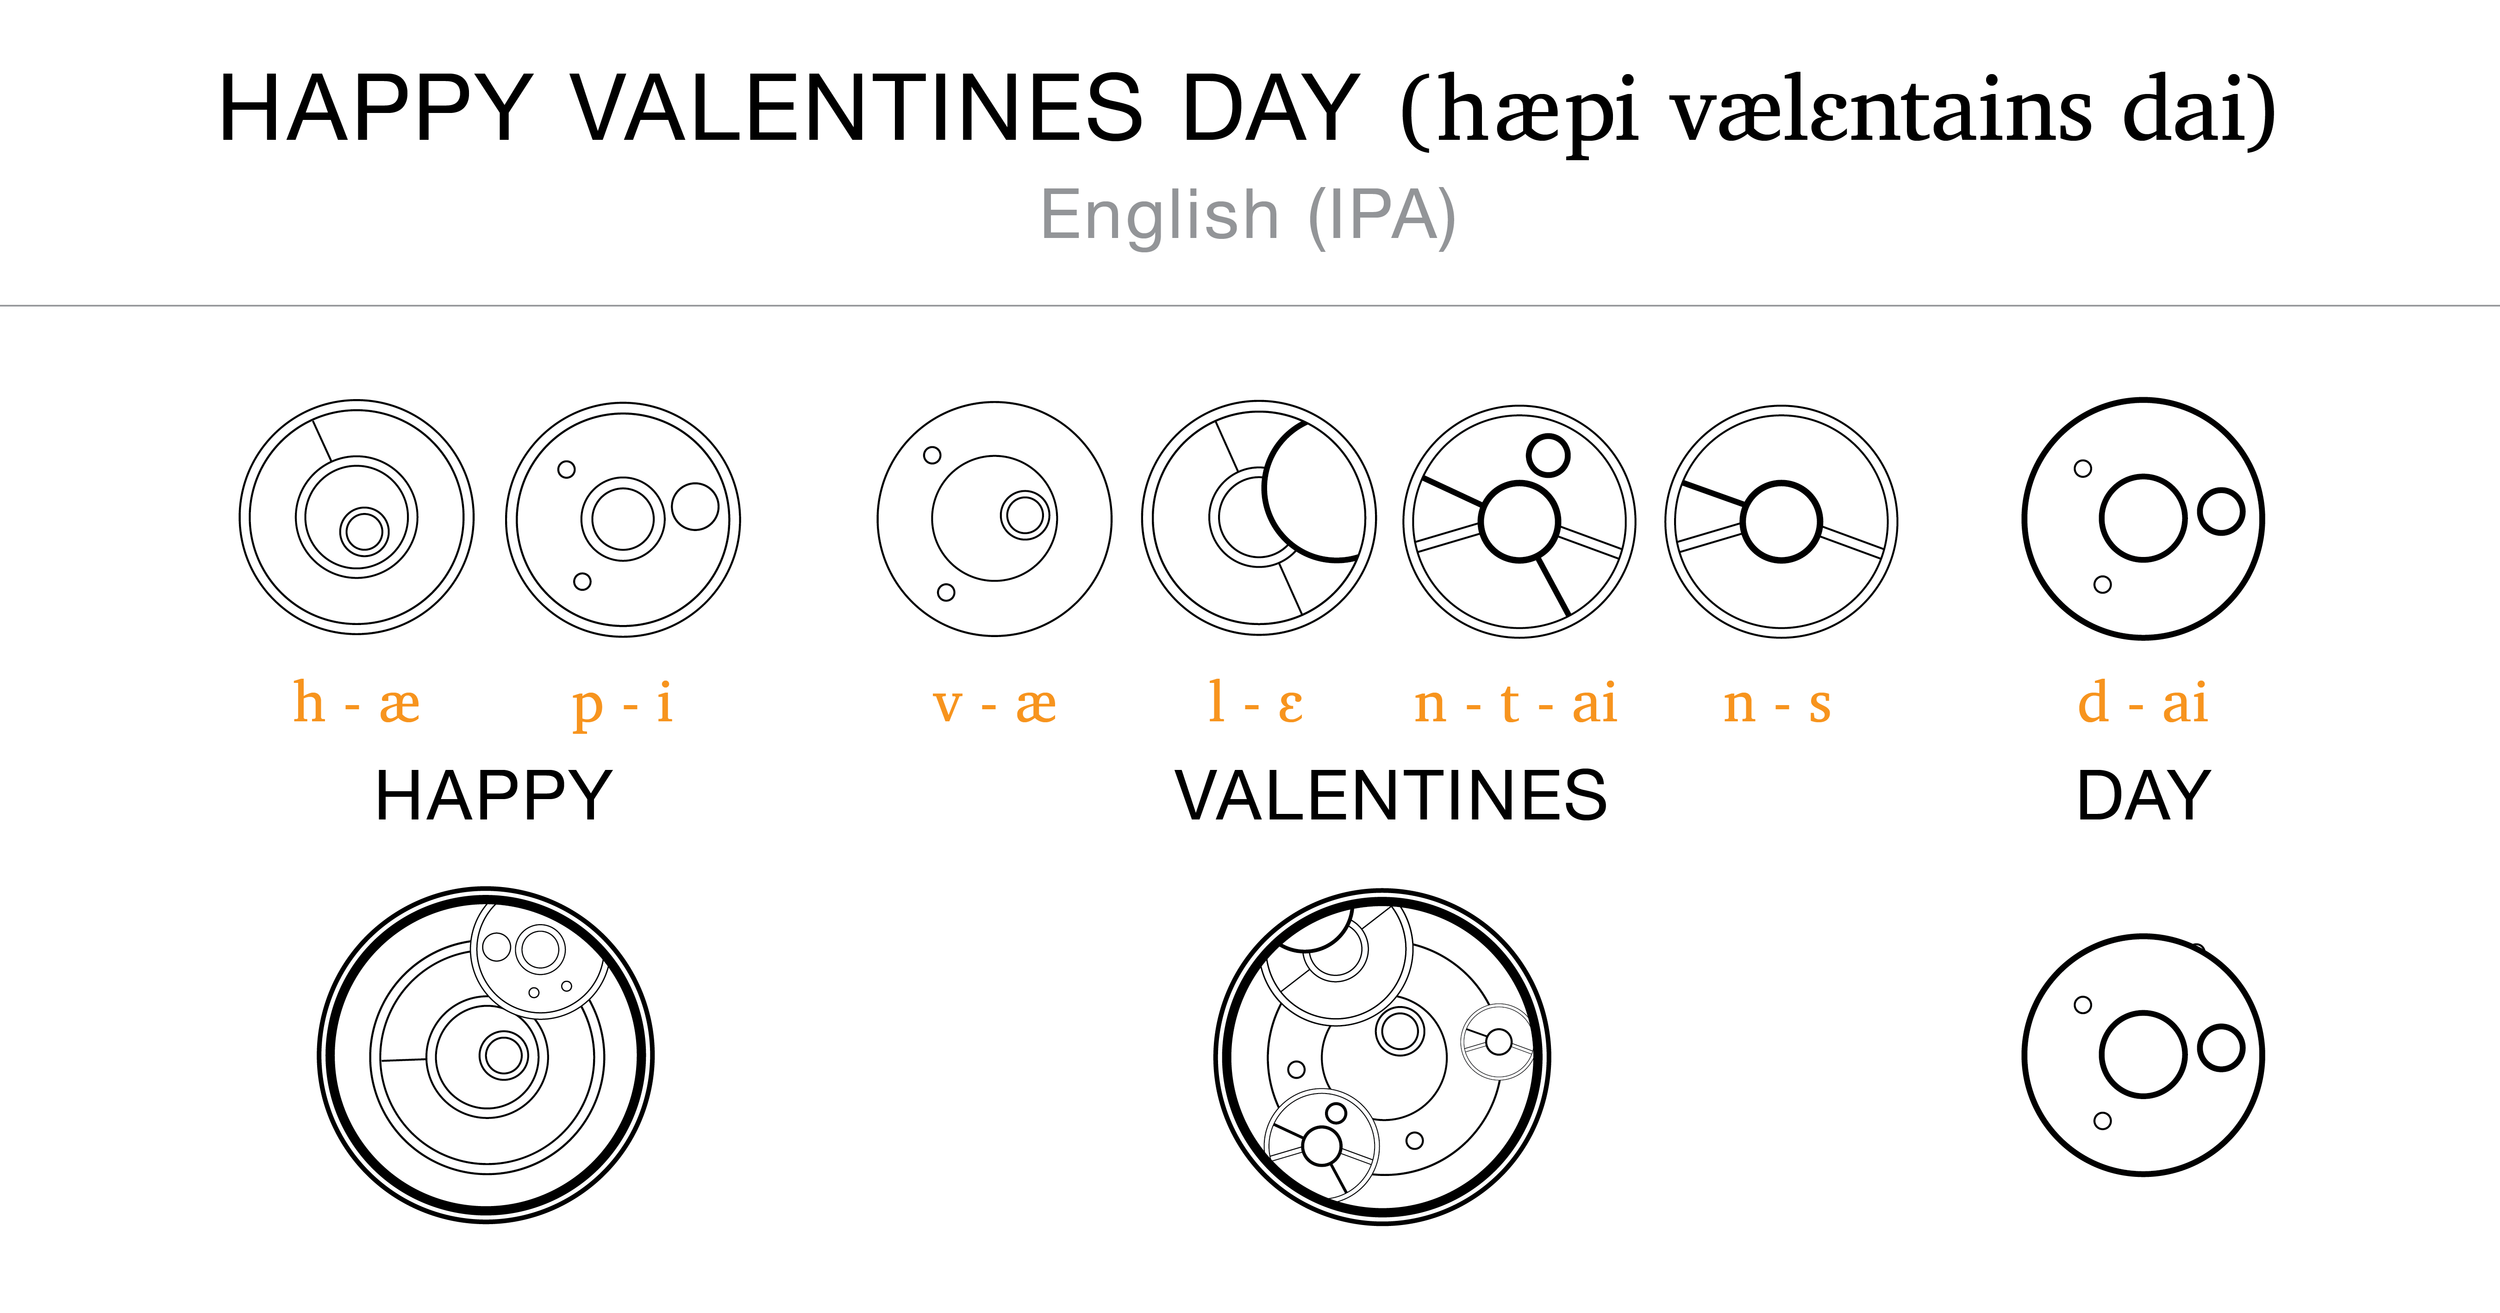 HappyValentinesDay-01.png